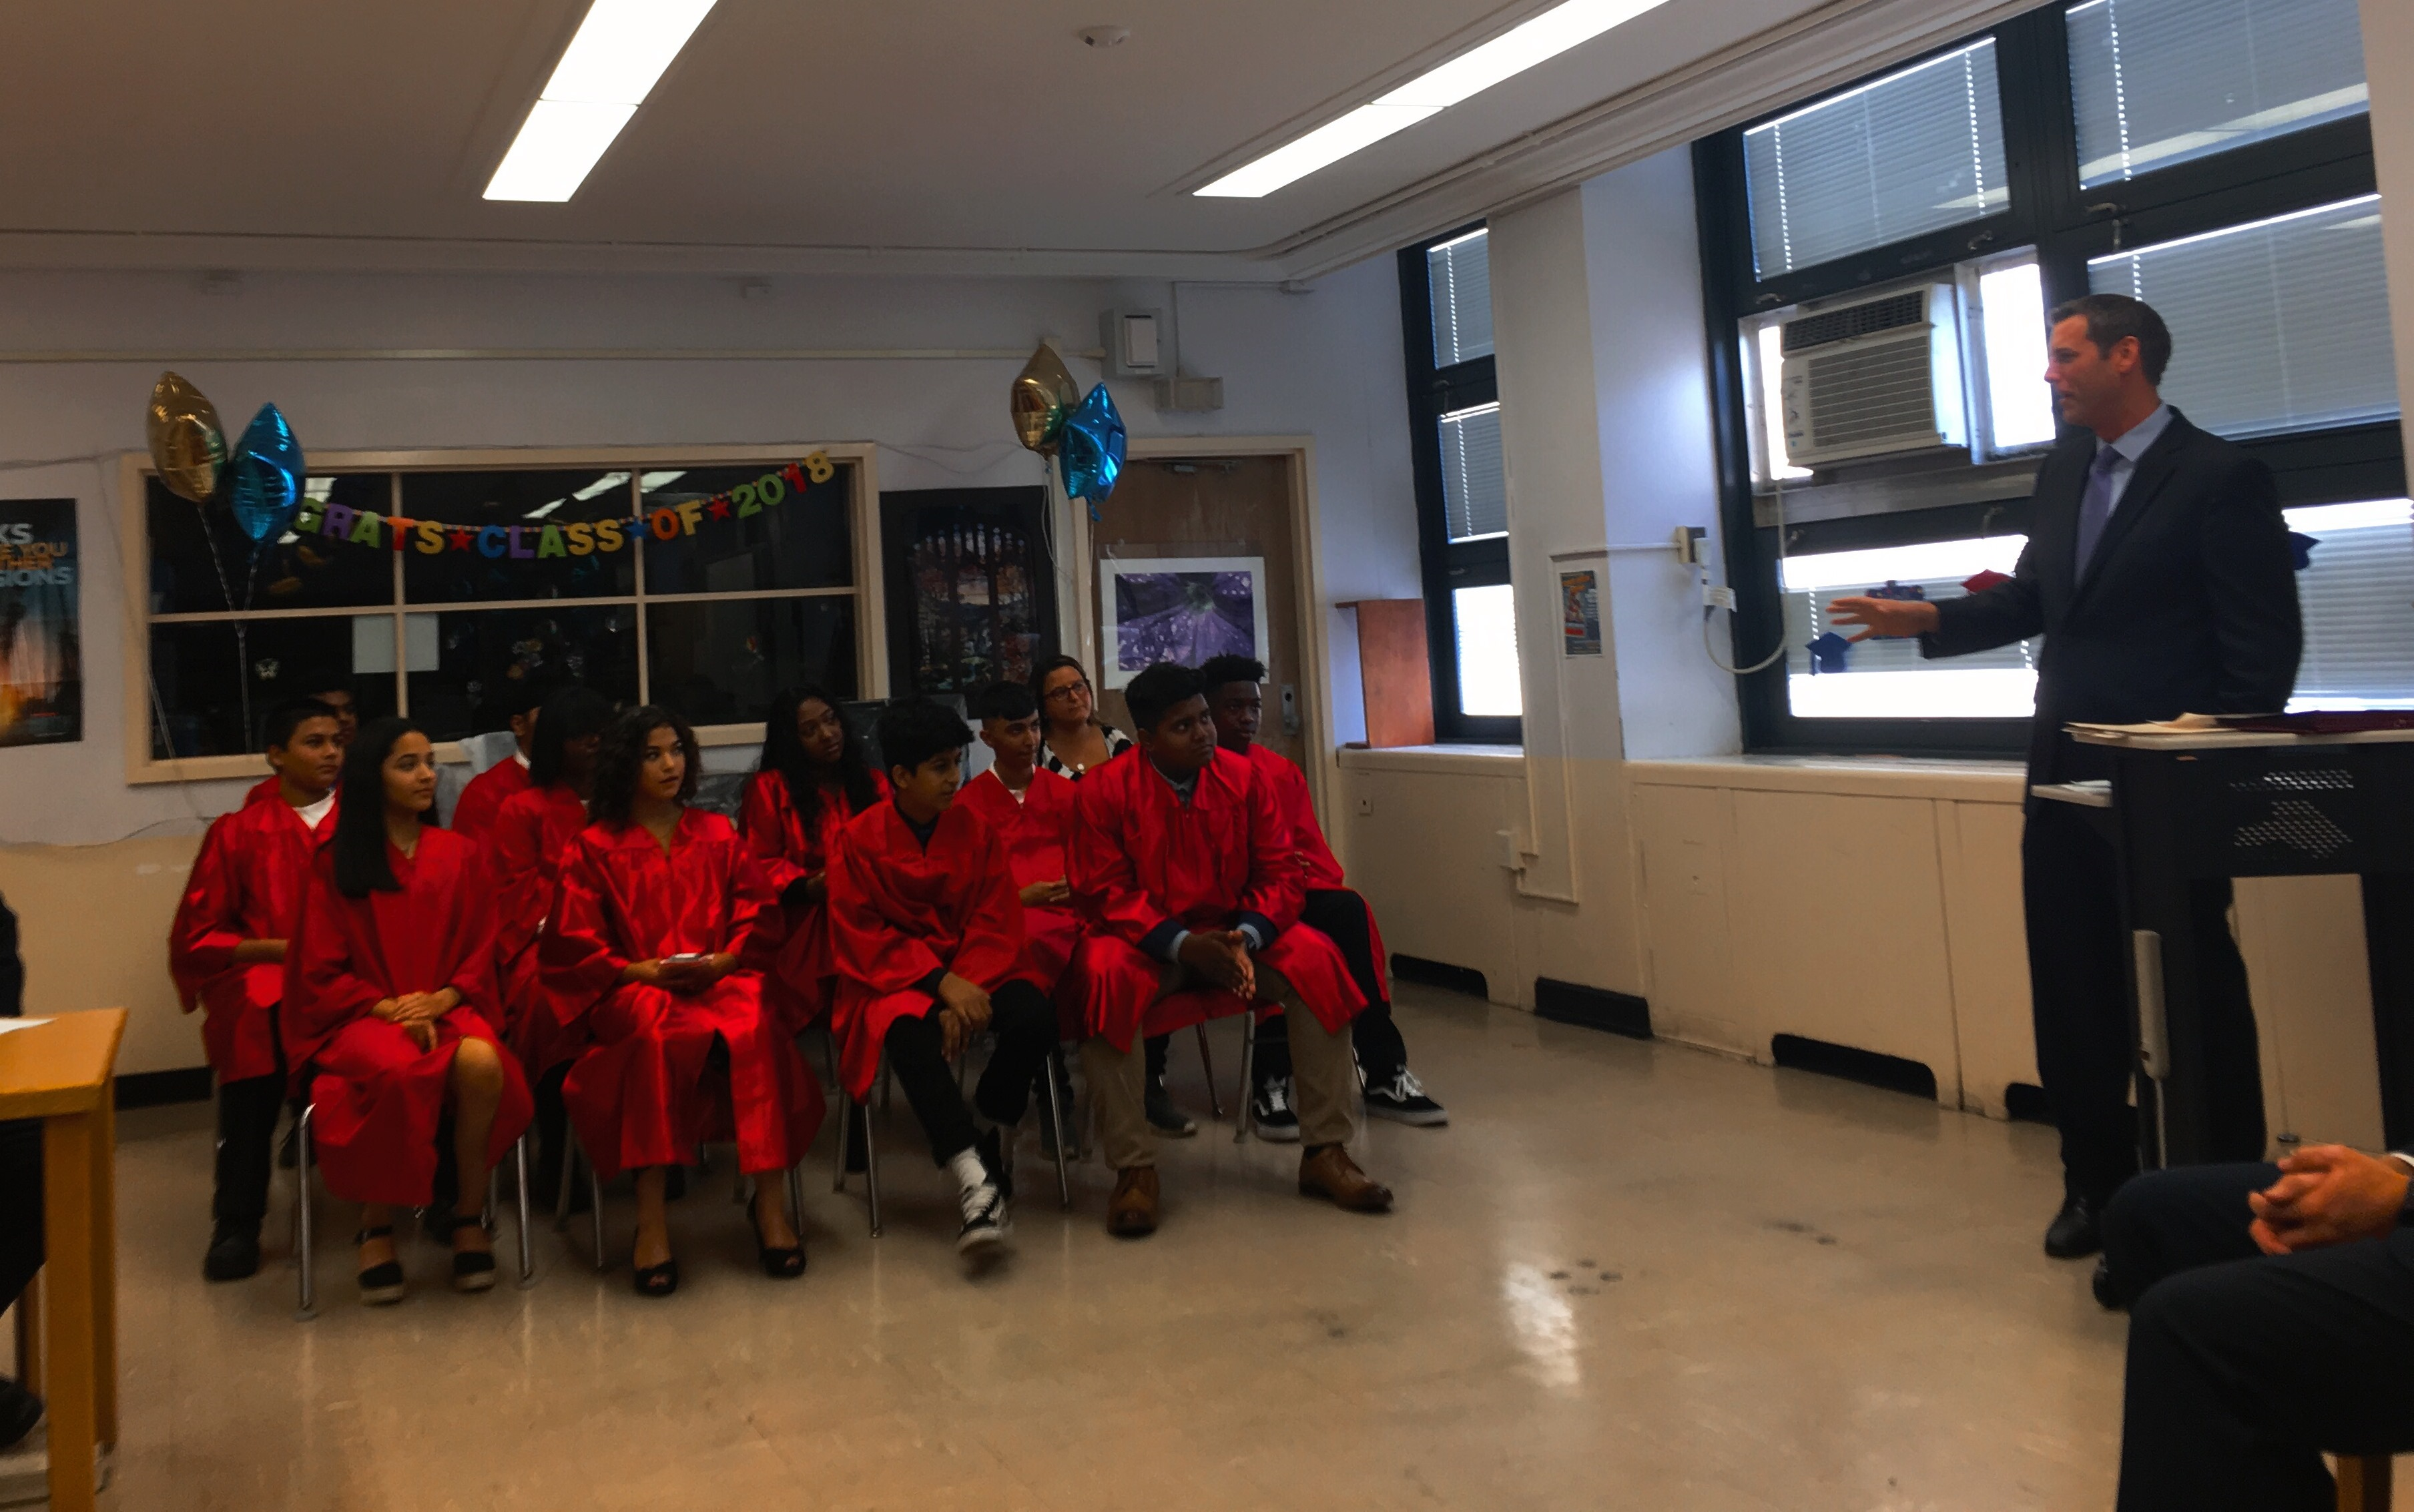 On August 10, 2018, Assemblyman Braunstein attended the Summer in the City graduation program at MS 158.